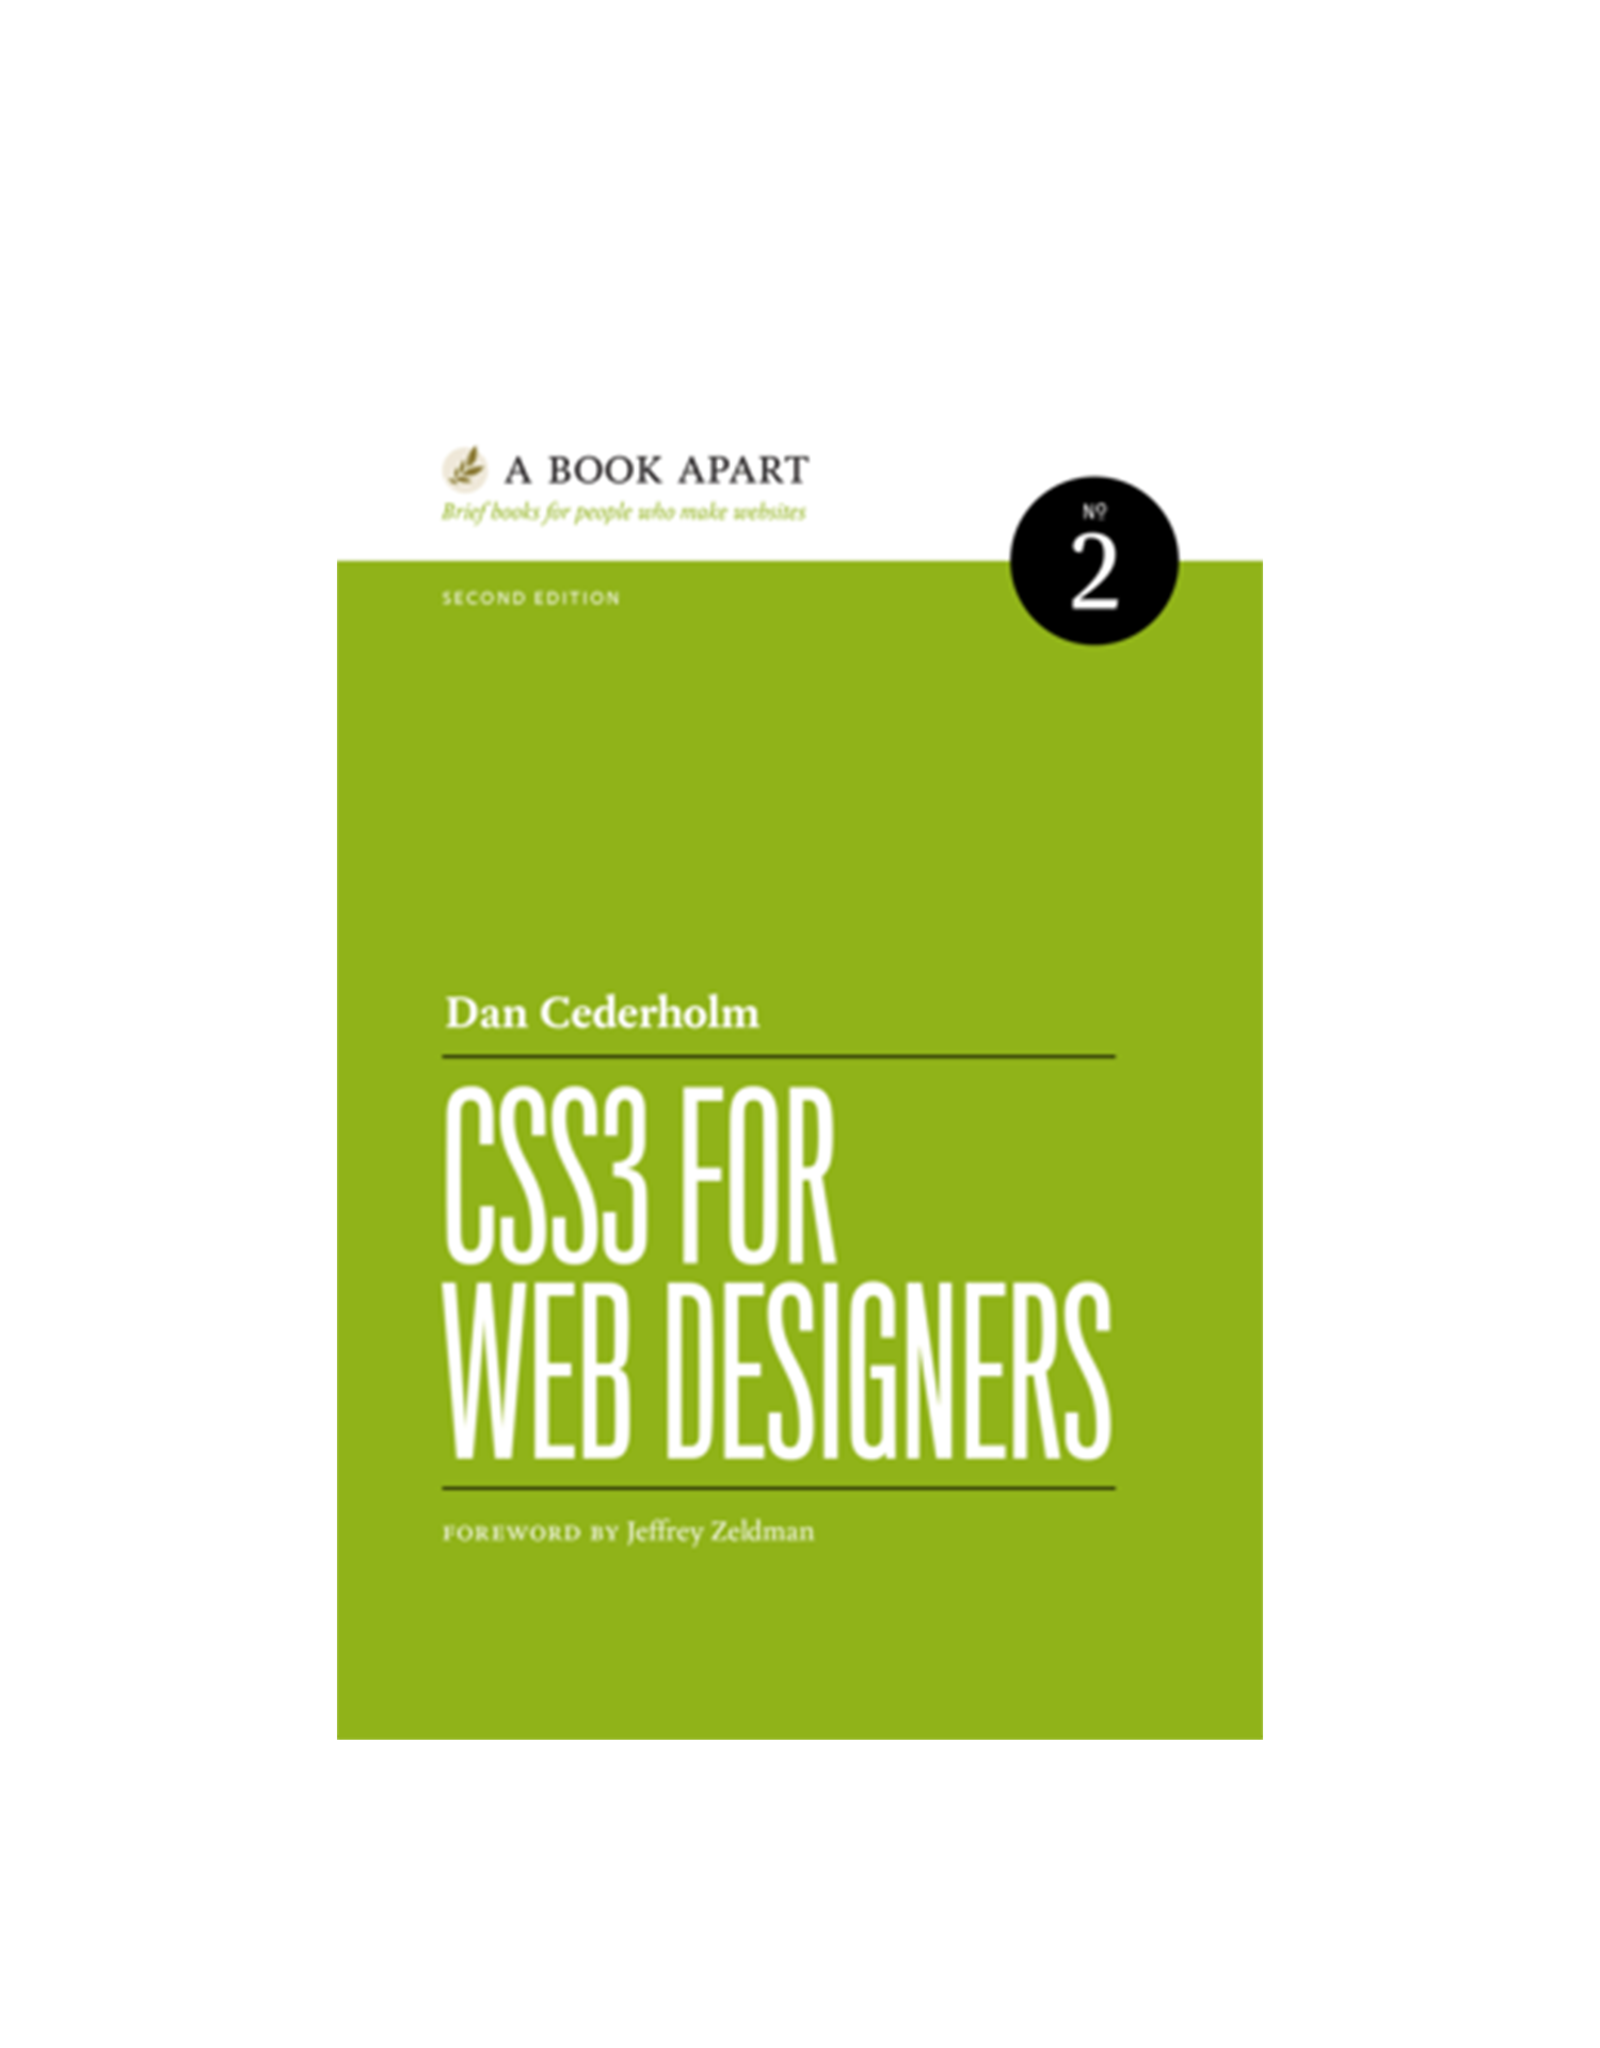 A Book Apart: CSS3 for Web Designers (No. 2), 2nd. ed.